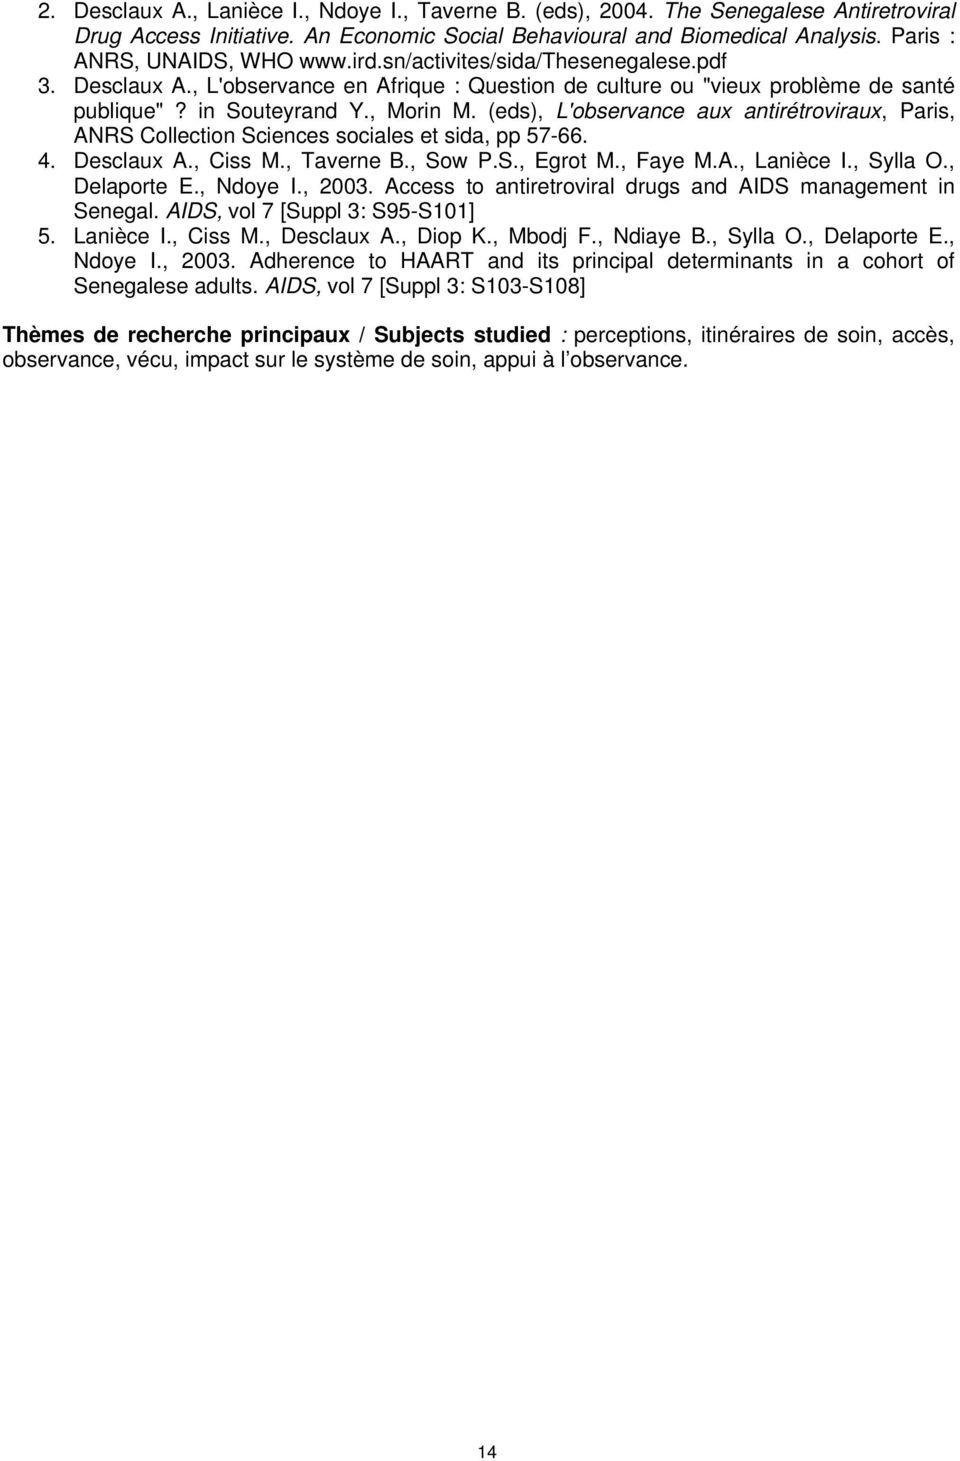 (eds), L'observance aux antirétroviraux, Paris, ANRS Collection Sciences sociales et sida, pp 57-66. 4. Desclaux A., Ciss M., Taverne B., Sow P.S., Egrot M., Faye M.A., Lanièce I., Sylla O.